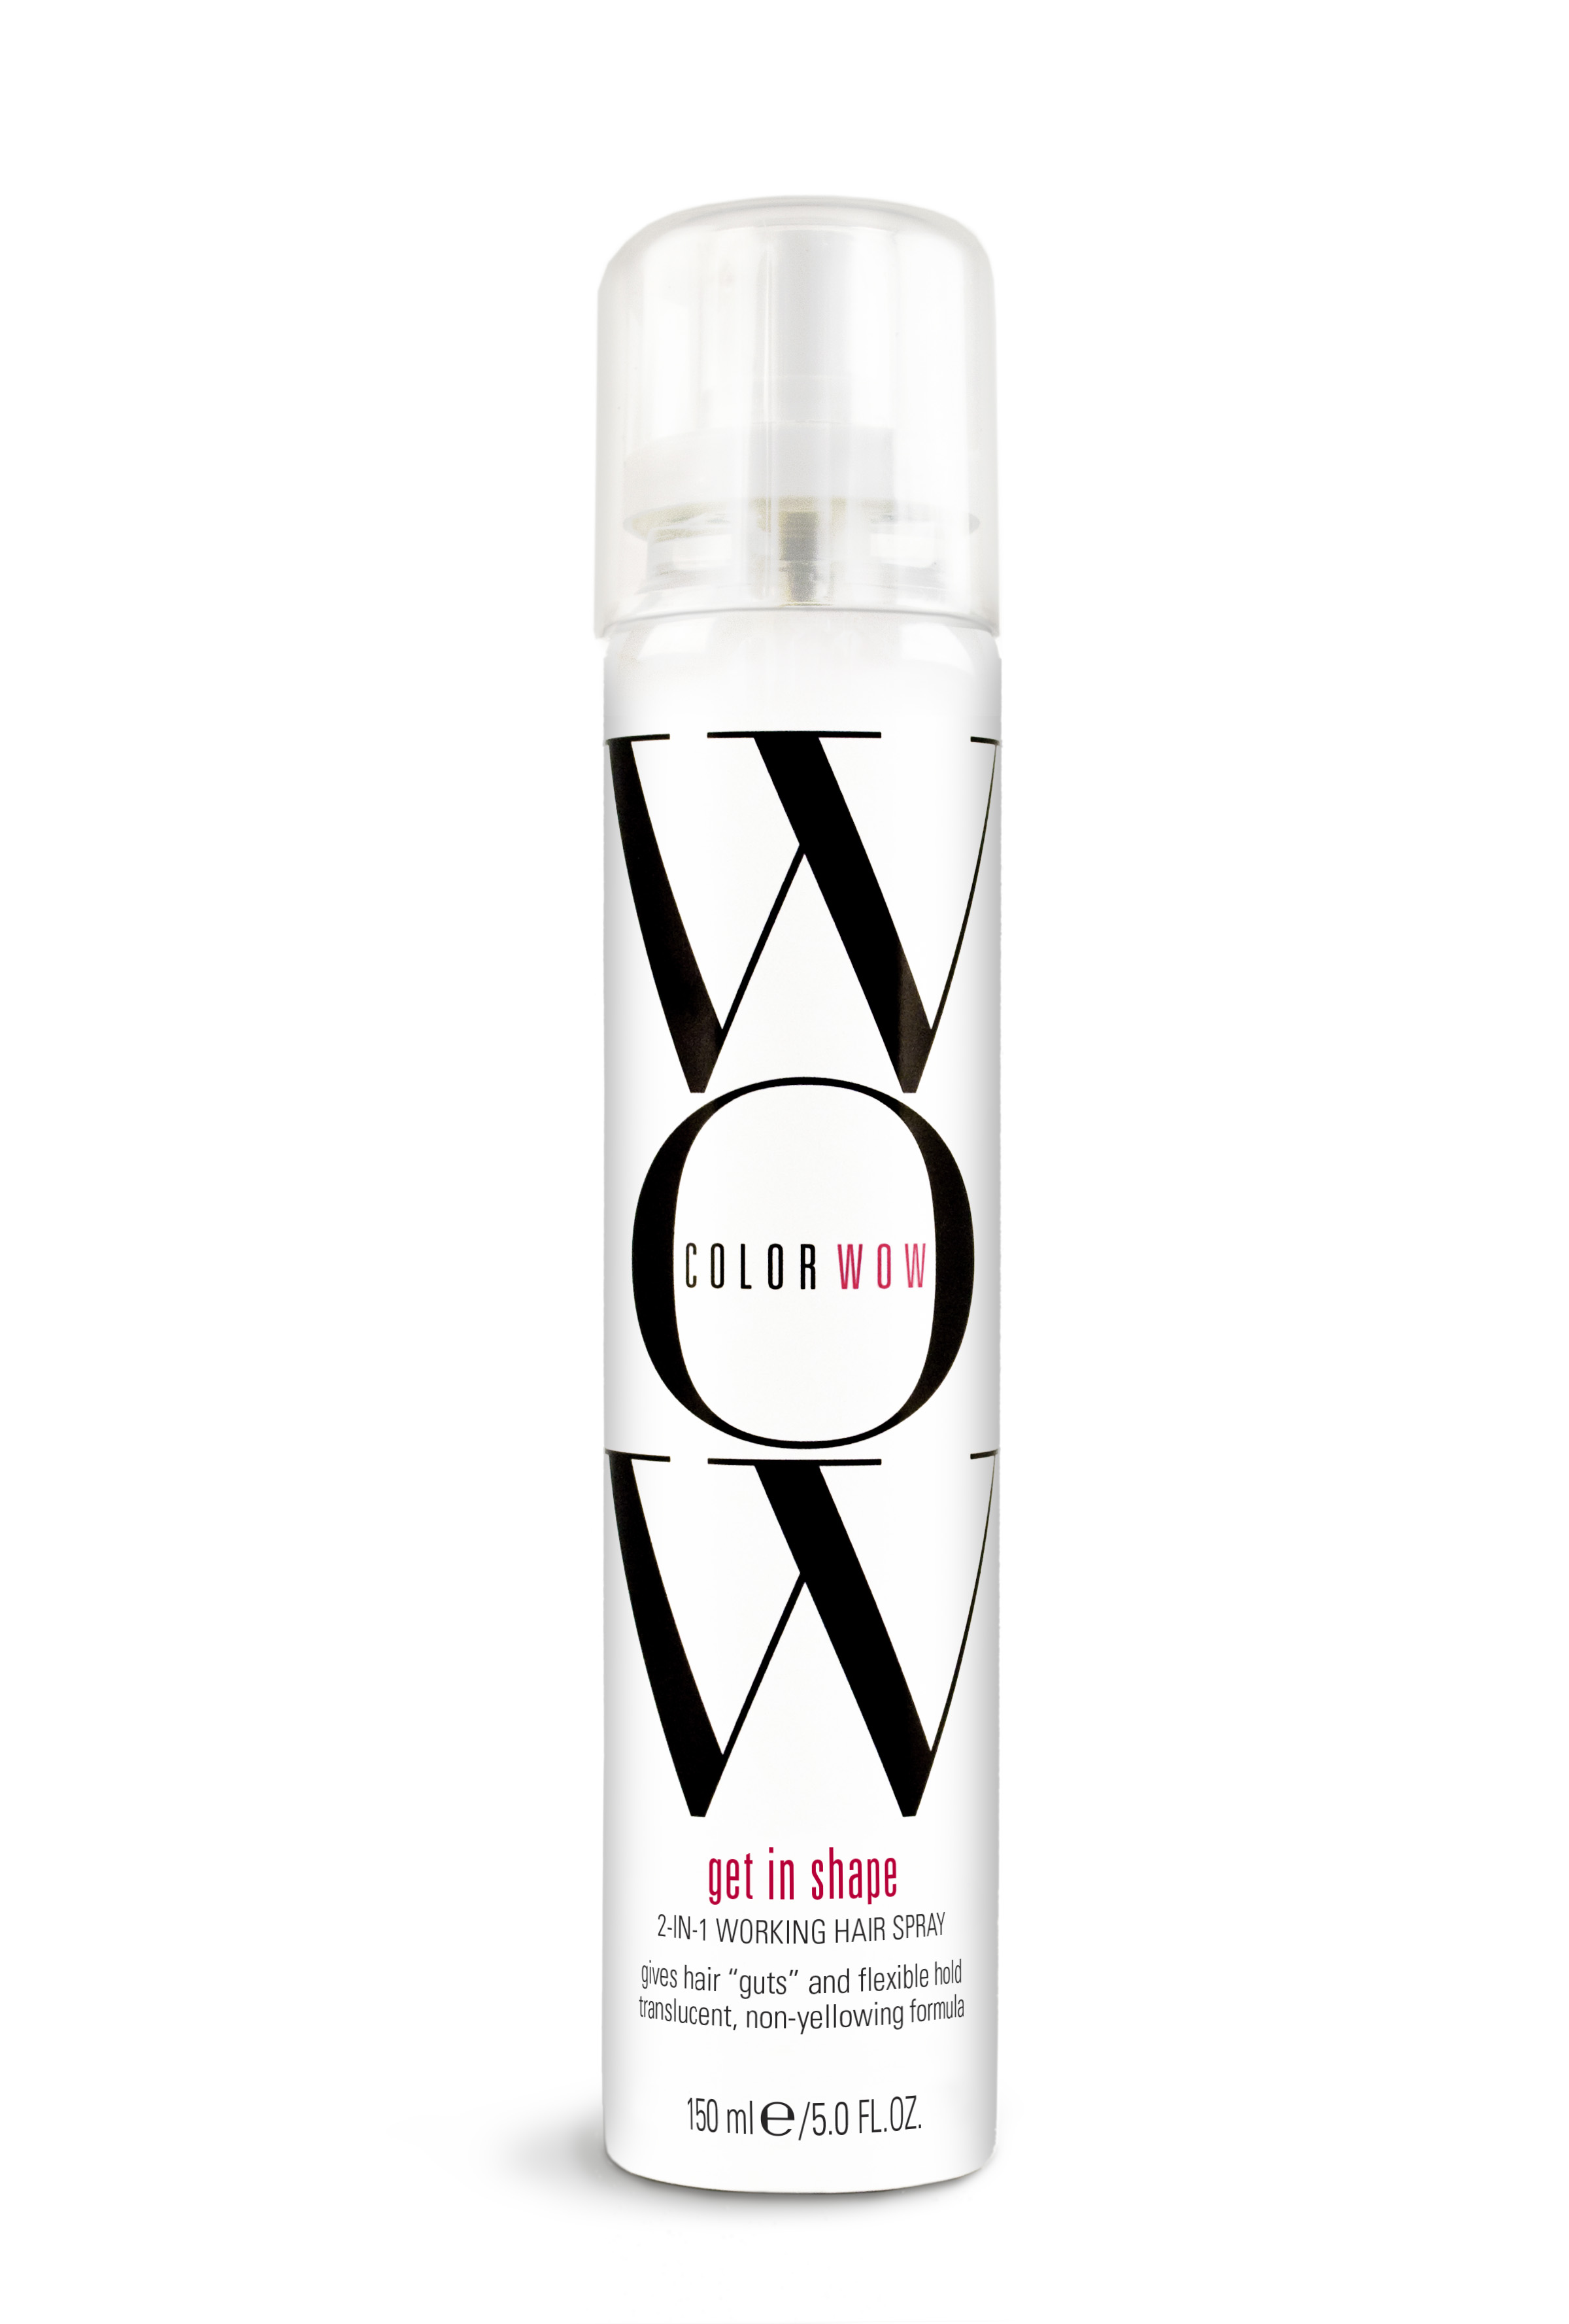 COLOR WOW GET IN SHAPE 2-IN-1 WORKING HAIR SPRAY 150 ml